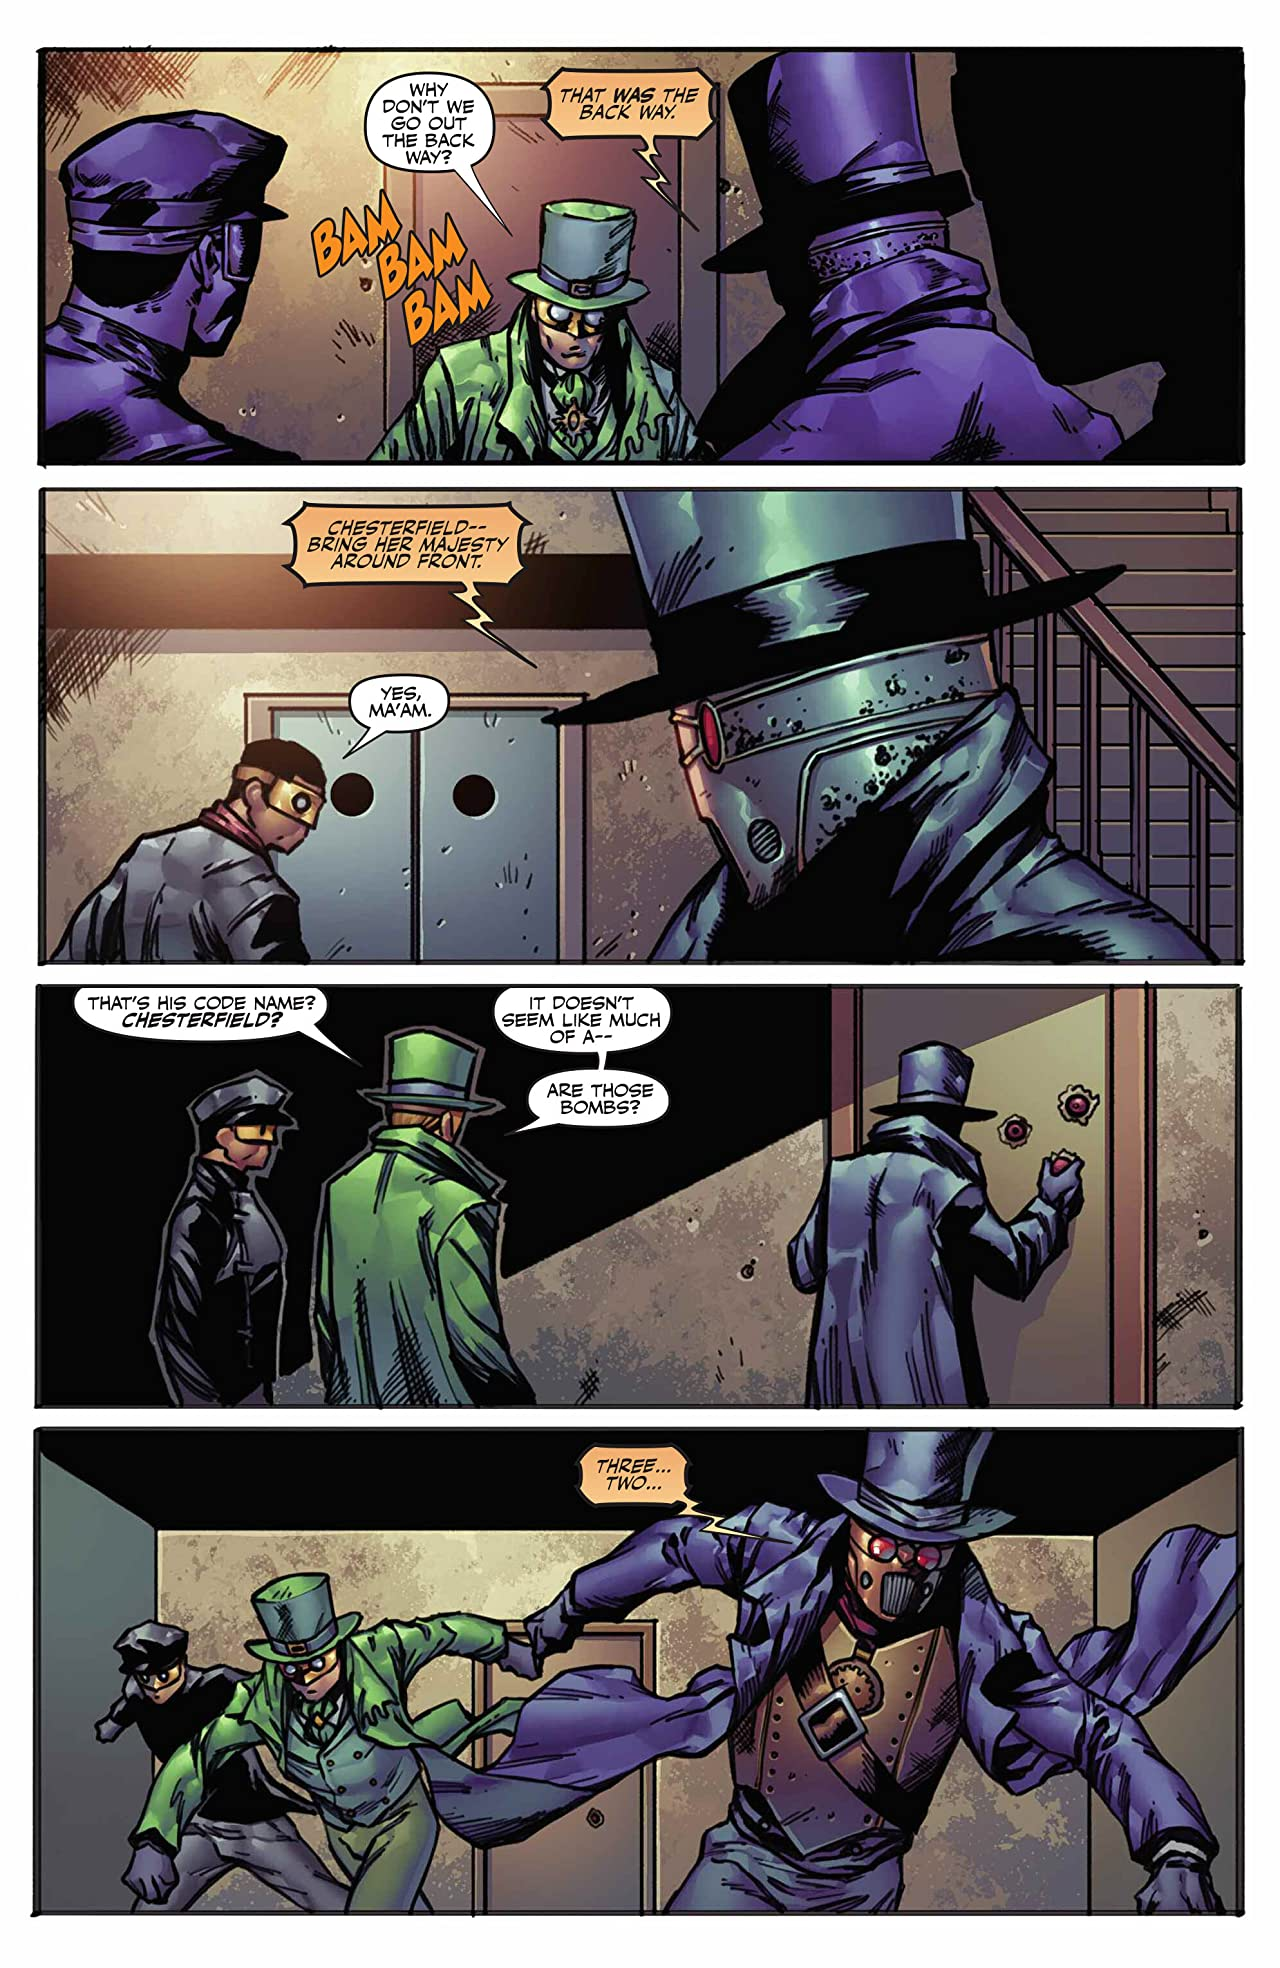 Legenderry: Green Hornet #4 (of 5): Digital Exclusive Edition